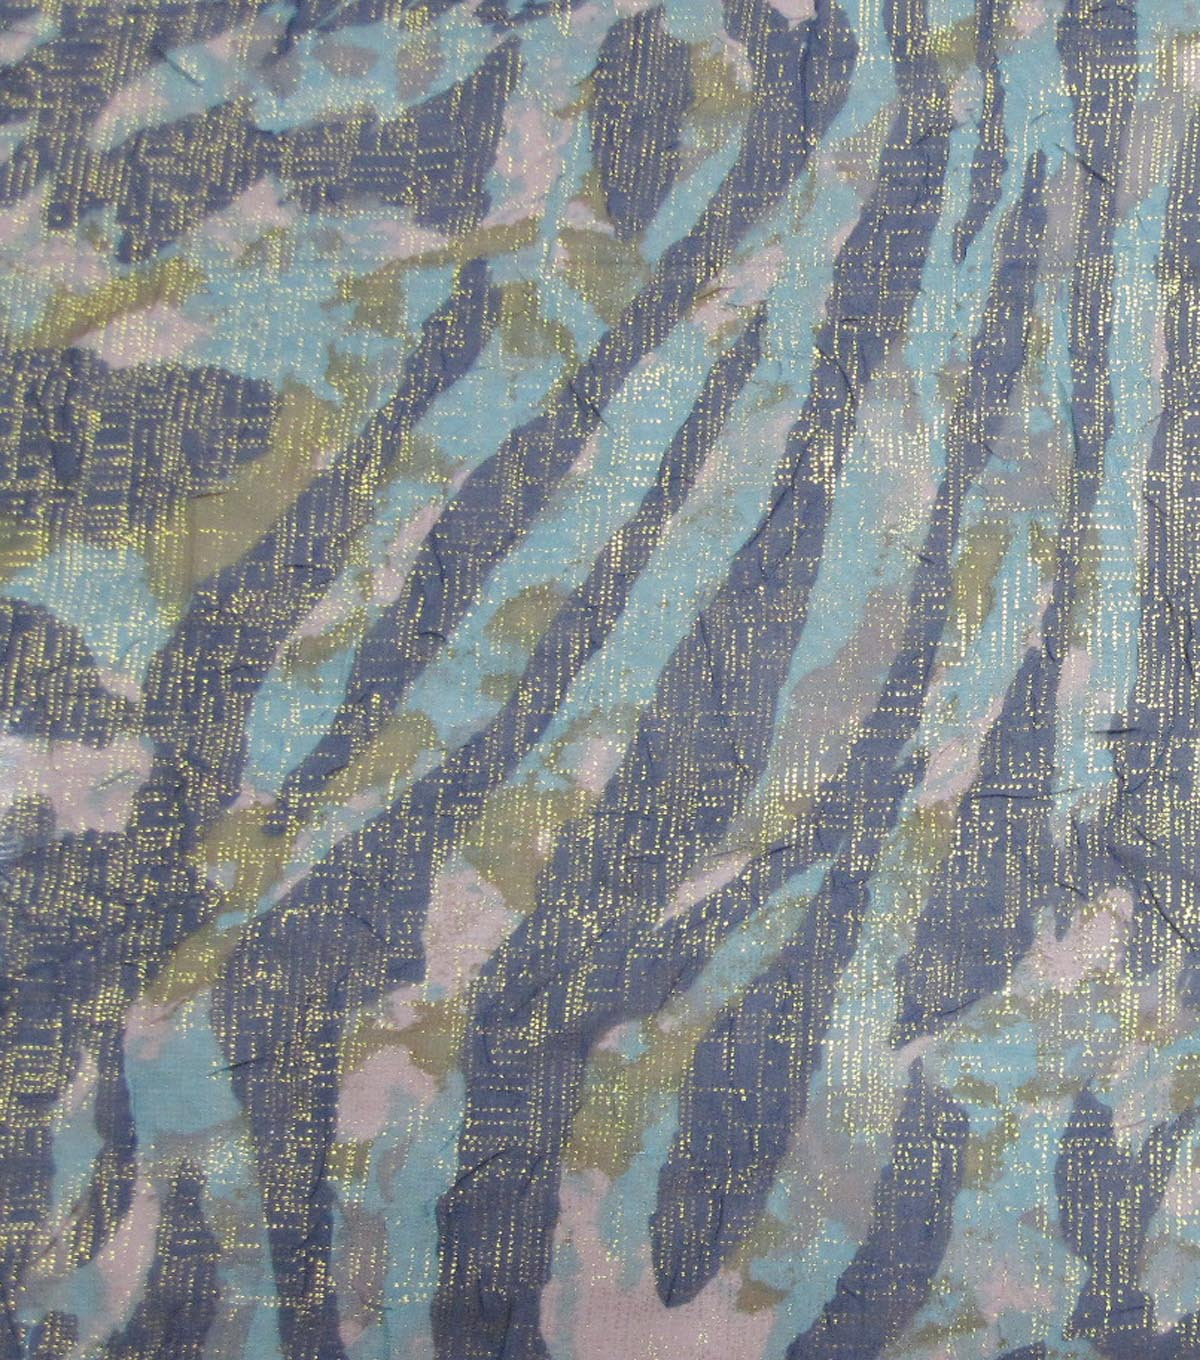 Simply Silky Print Fabric Animal Green Navy Gold Foil Crinkle Chiffon